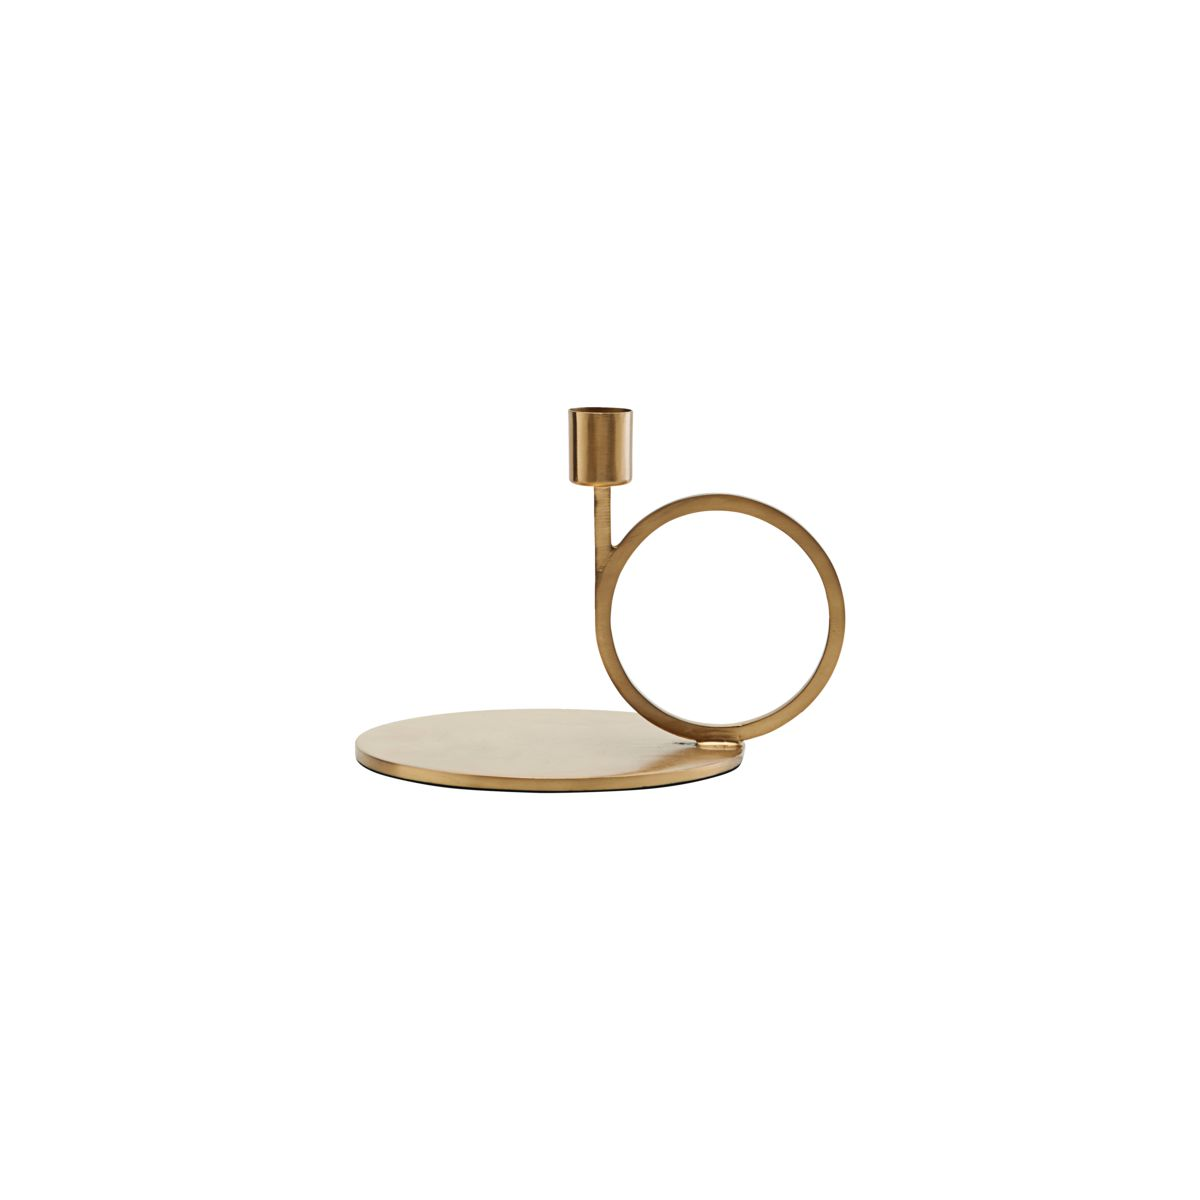 Cirque Candle Stand, Brass Finish